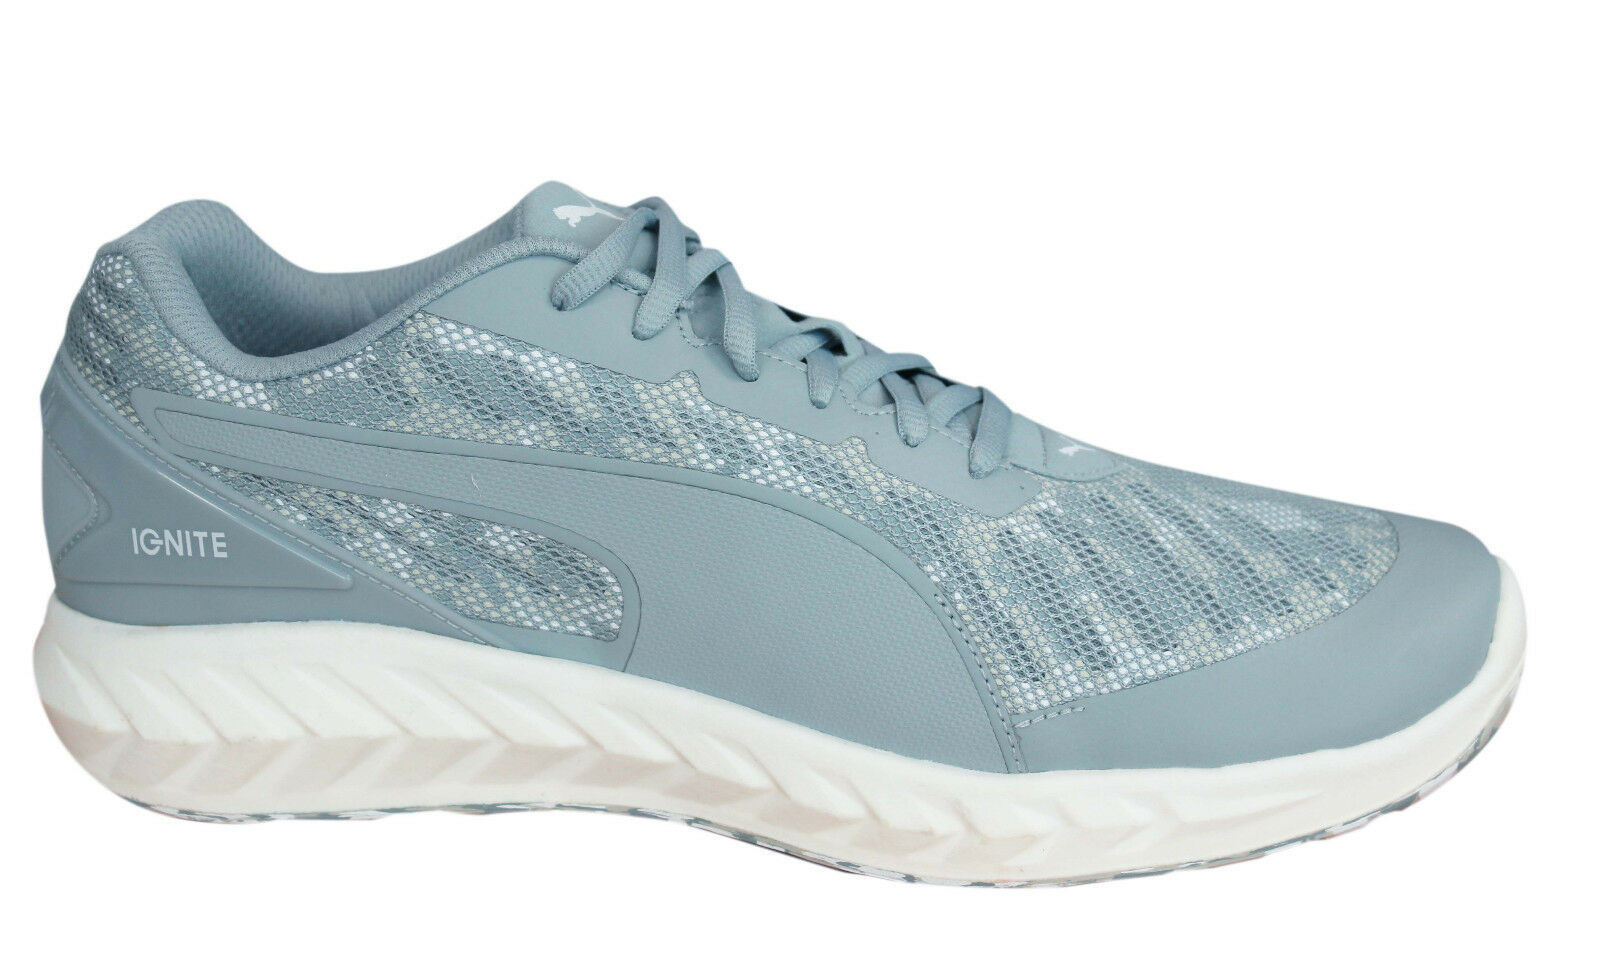 Puma Ignite Ultimate Cam Lace Up Trainers Grau  Uomo Textile Trainers Up 189004 02 OppM6 0243b6